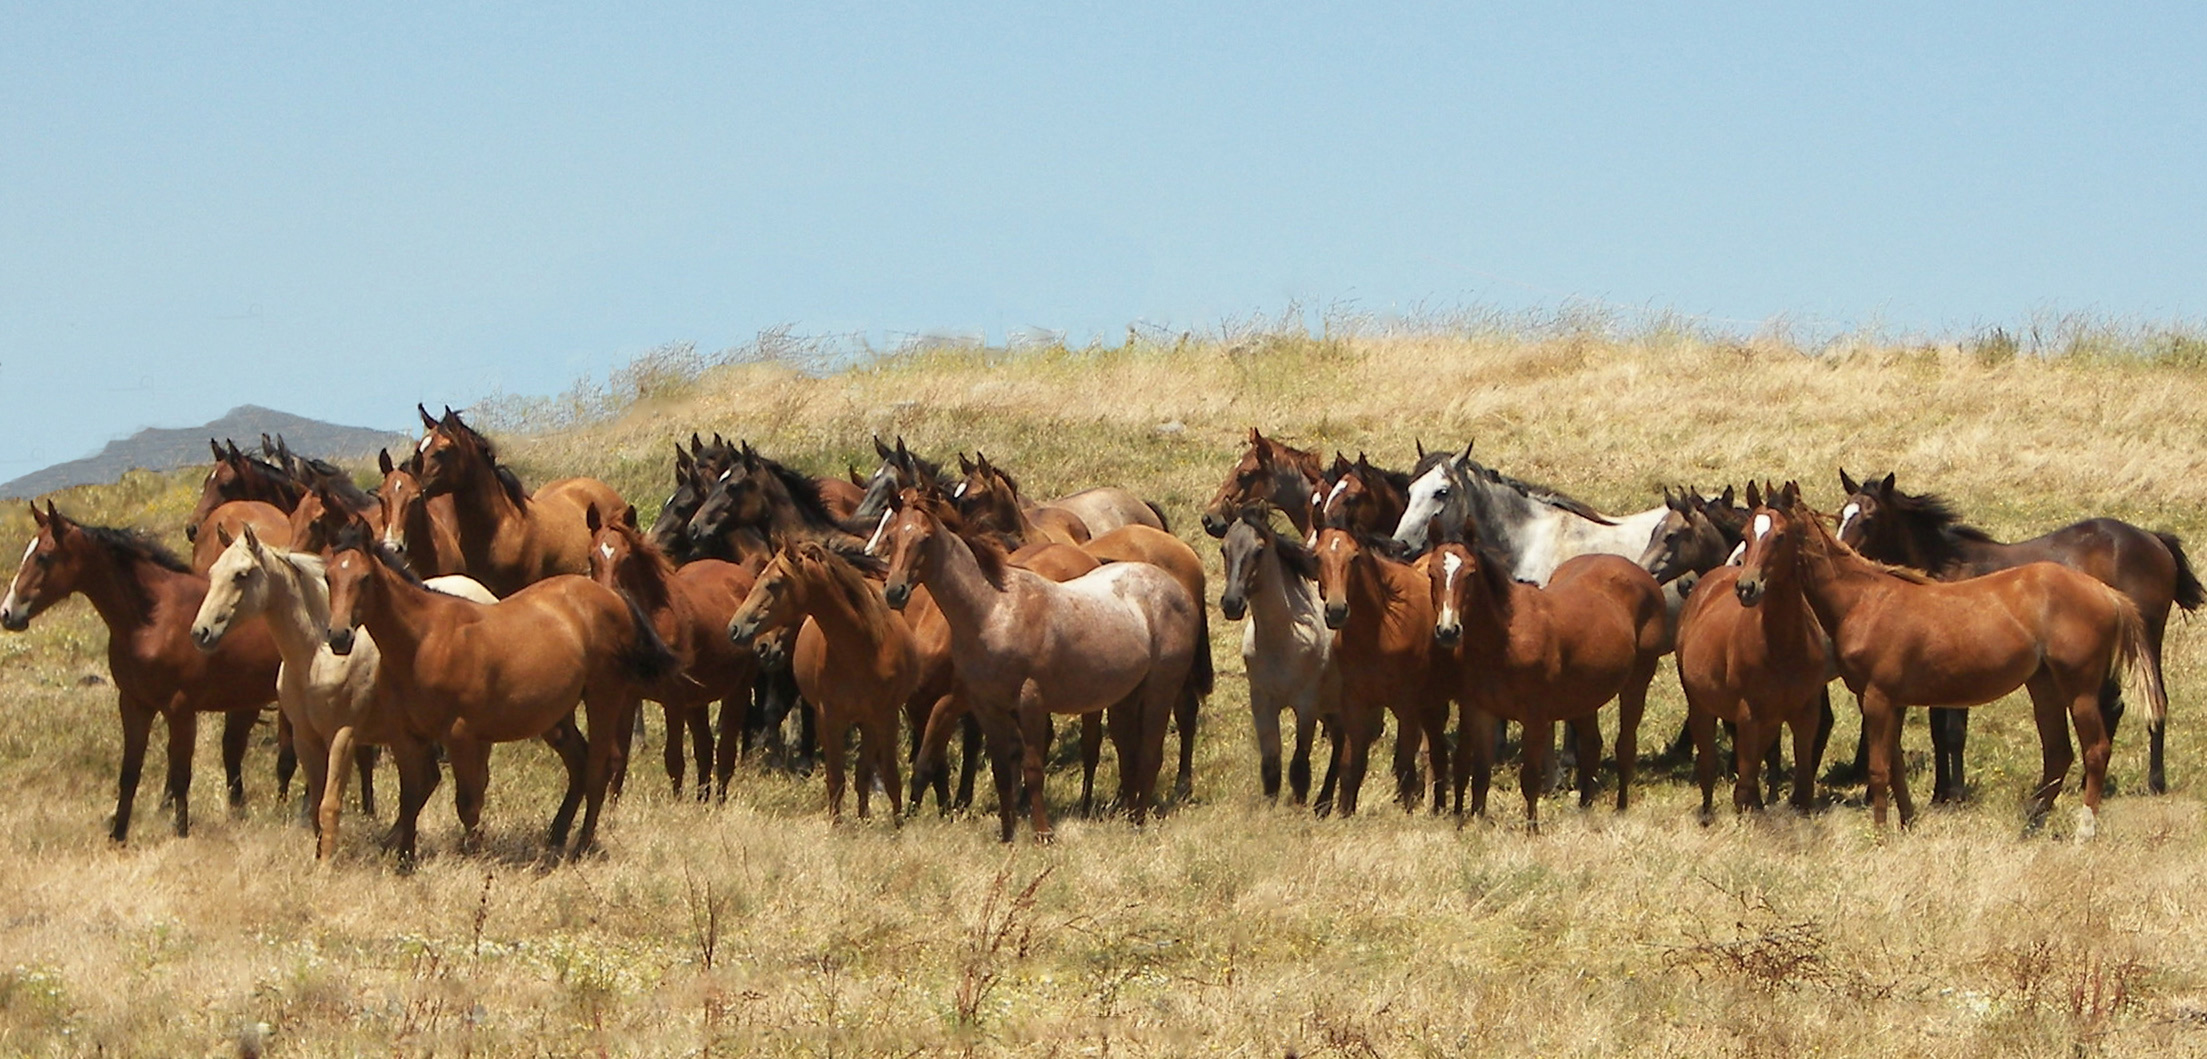 Colts in Field-Horsemen's Re-Union Photo 2012**+